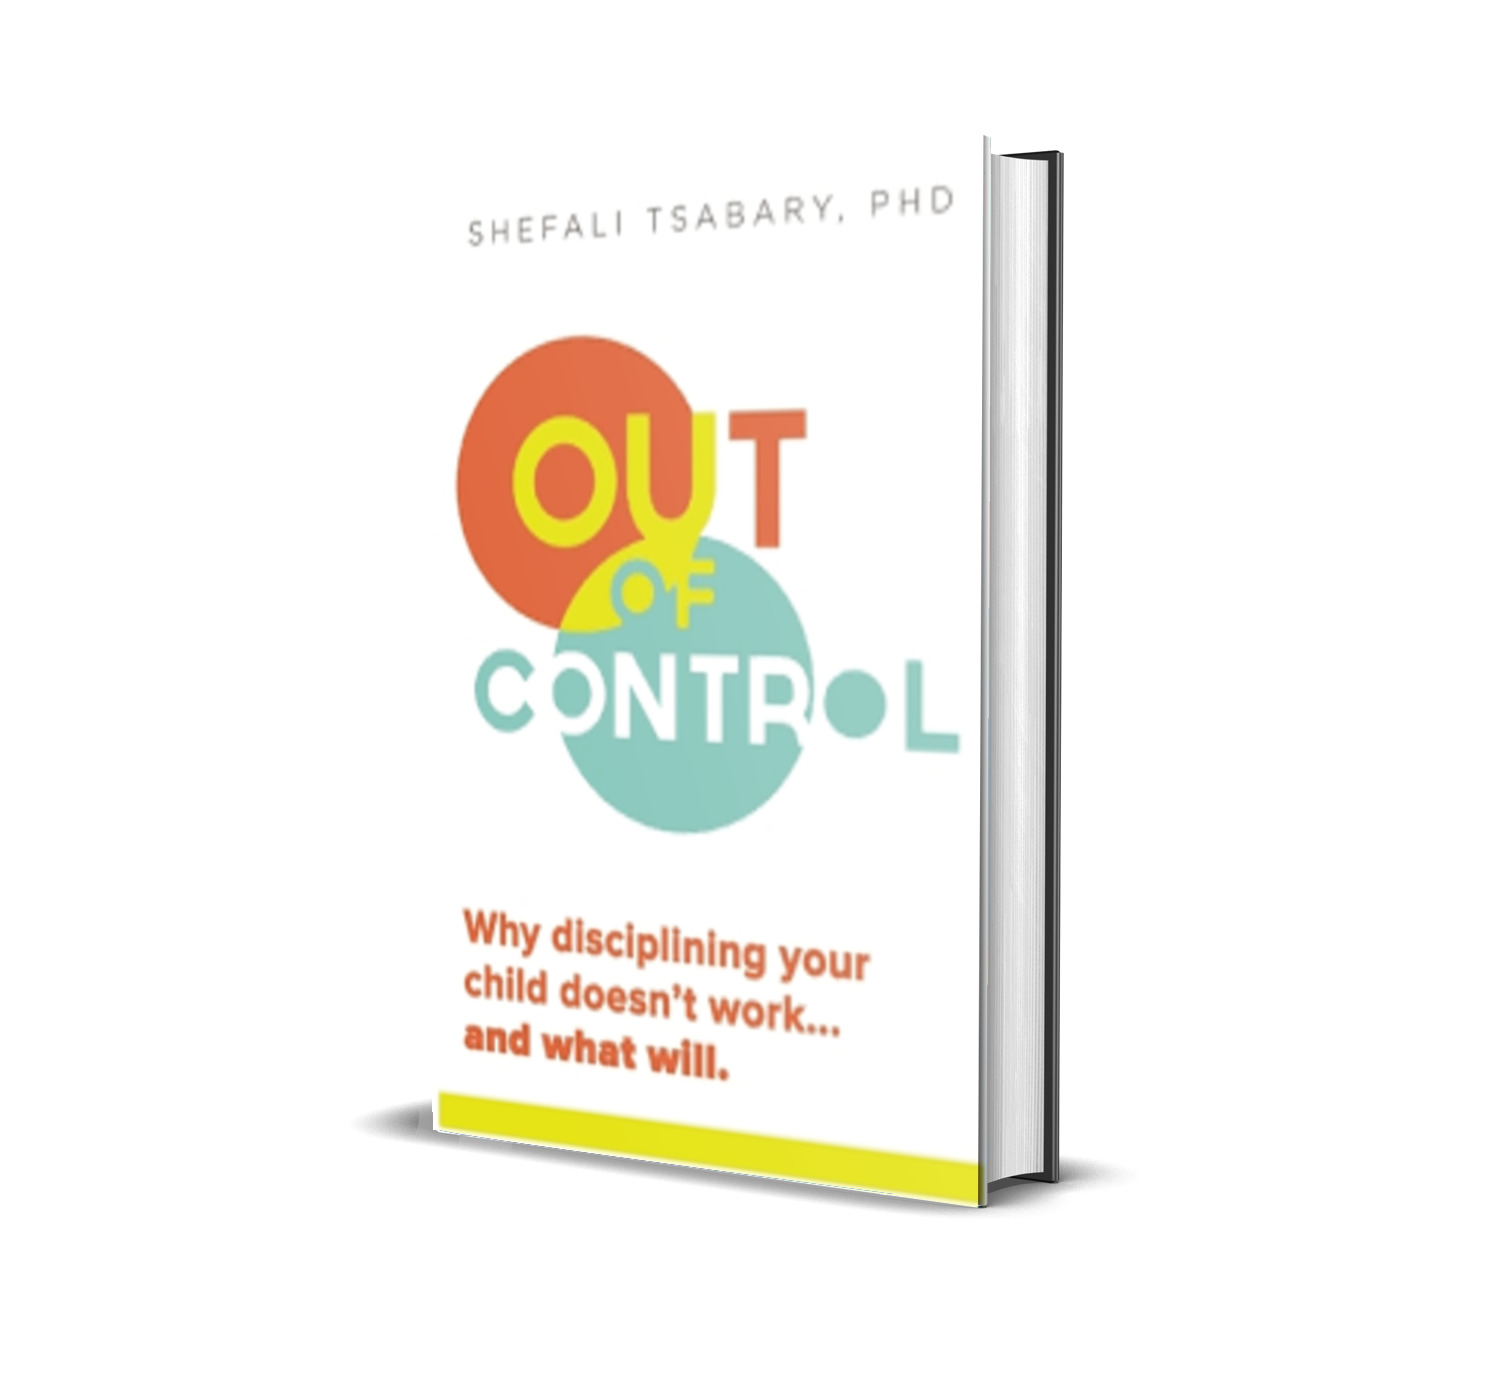 Out of control:why disciplining your children doesn't work and what will- Dr. Shefali Tsabary